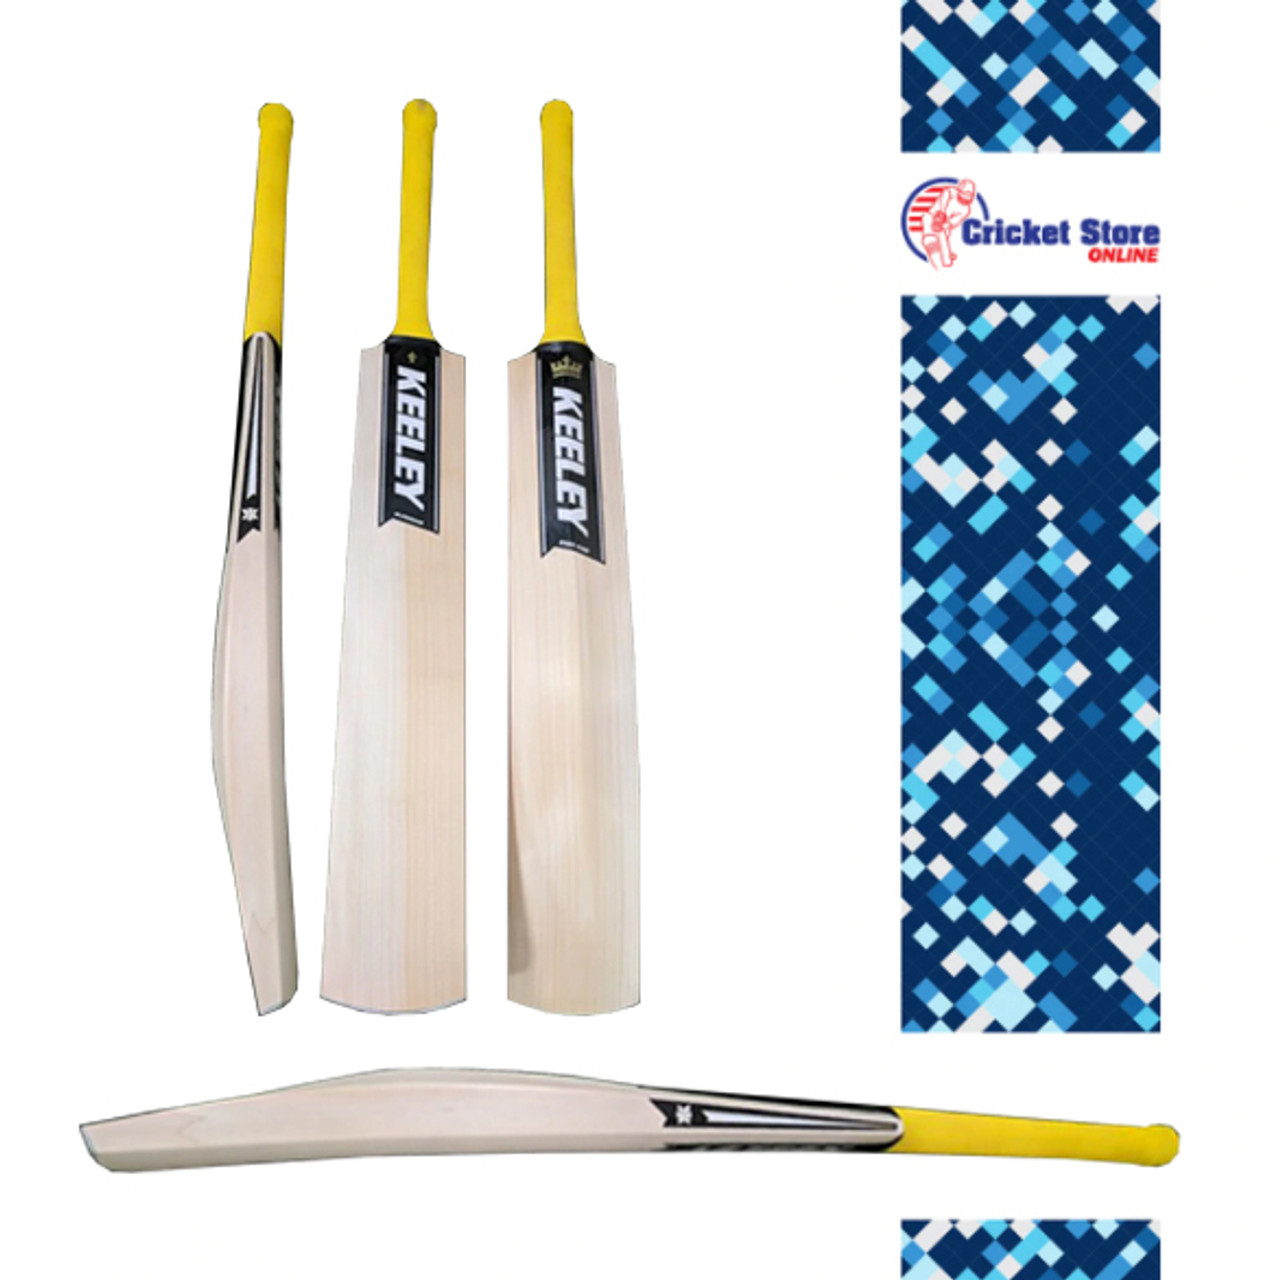 Keeley Cricket Bats